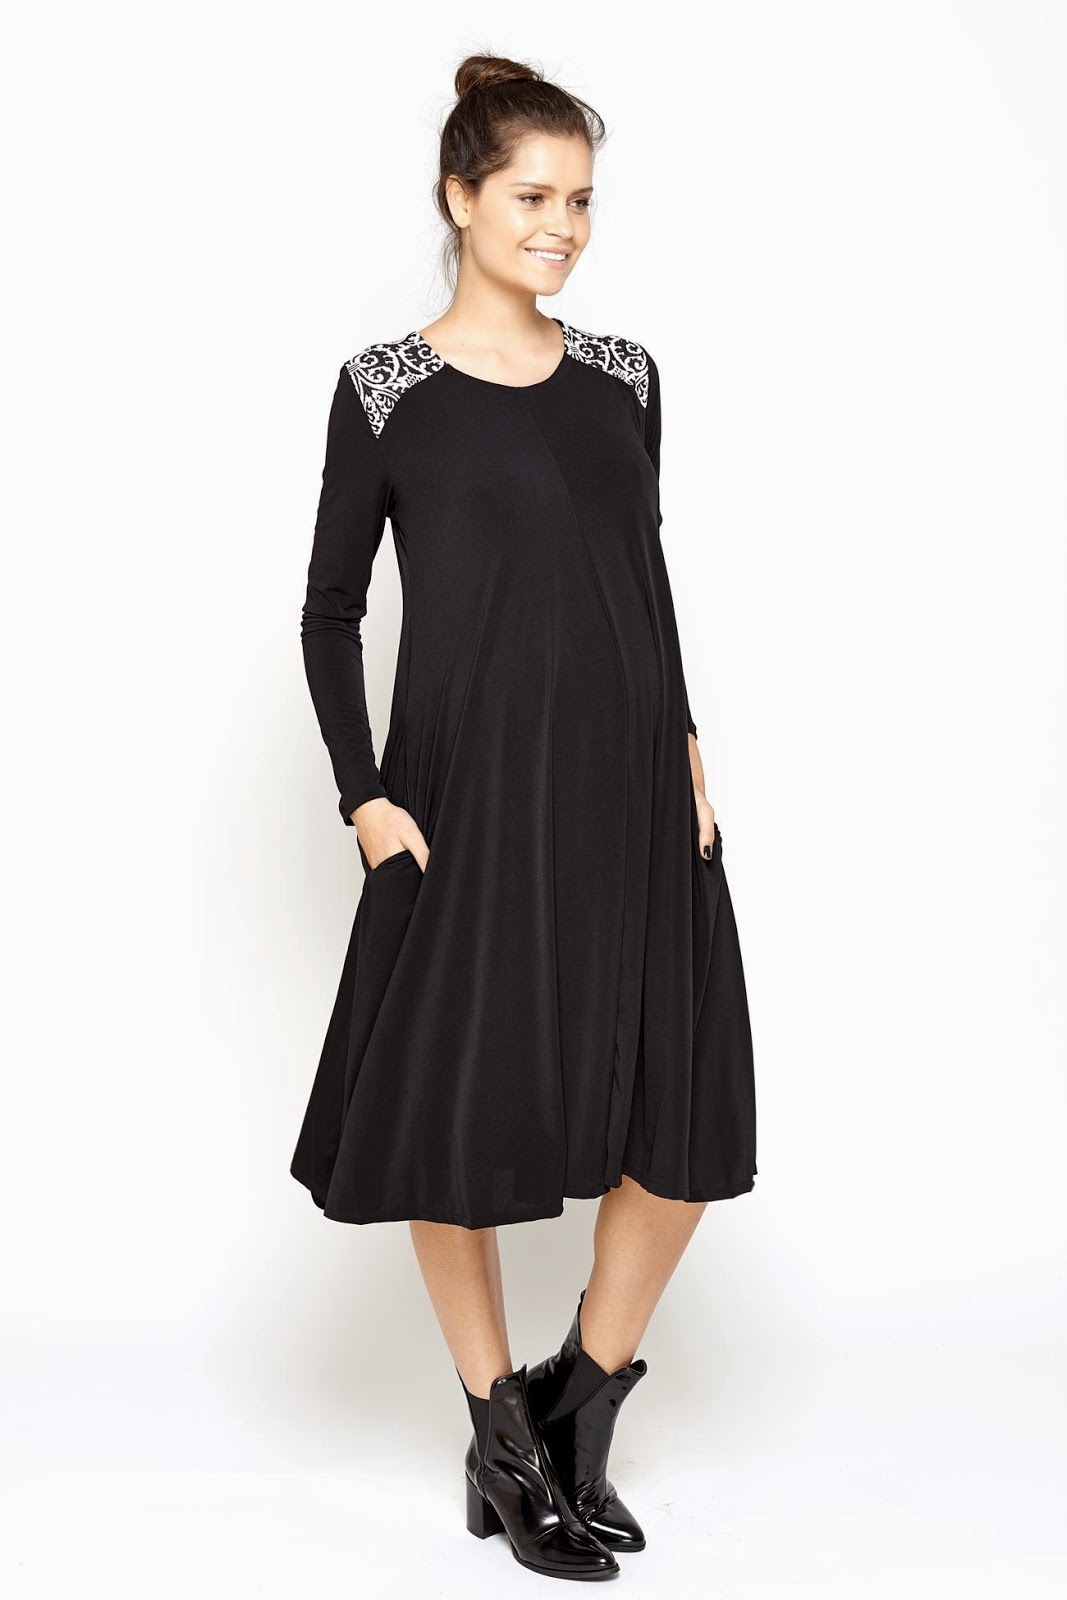 Modest black maternity dress with sleeves | Follow Mode-sty for stylish modest clothing #nolayering tznius orthodox jewish muslim hijab mormon lds pentecostal islamic evangelical christian apostolic